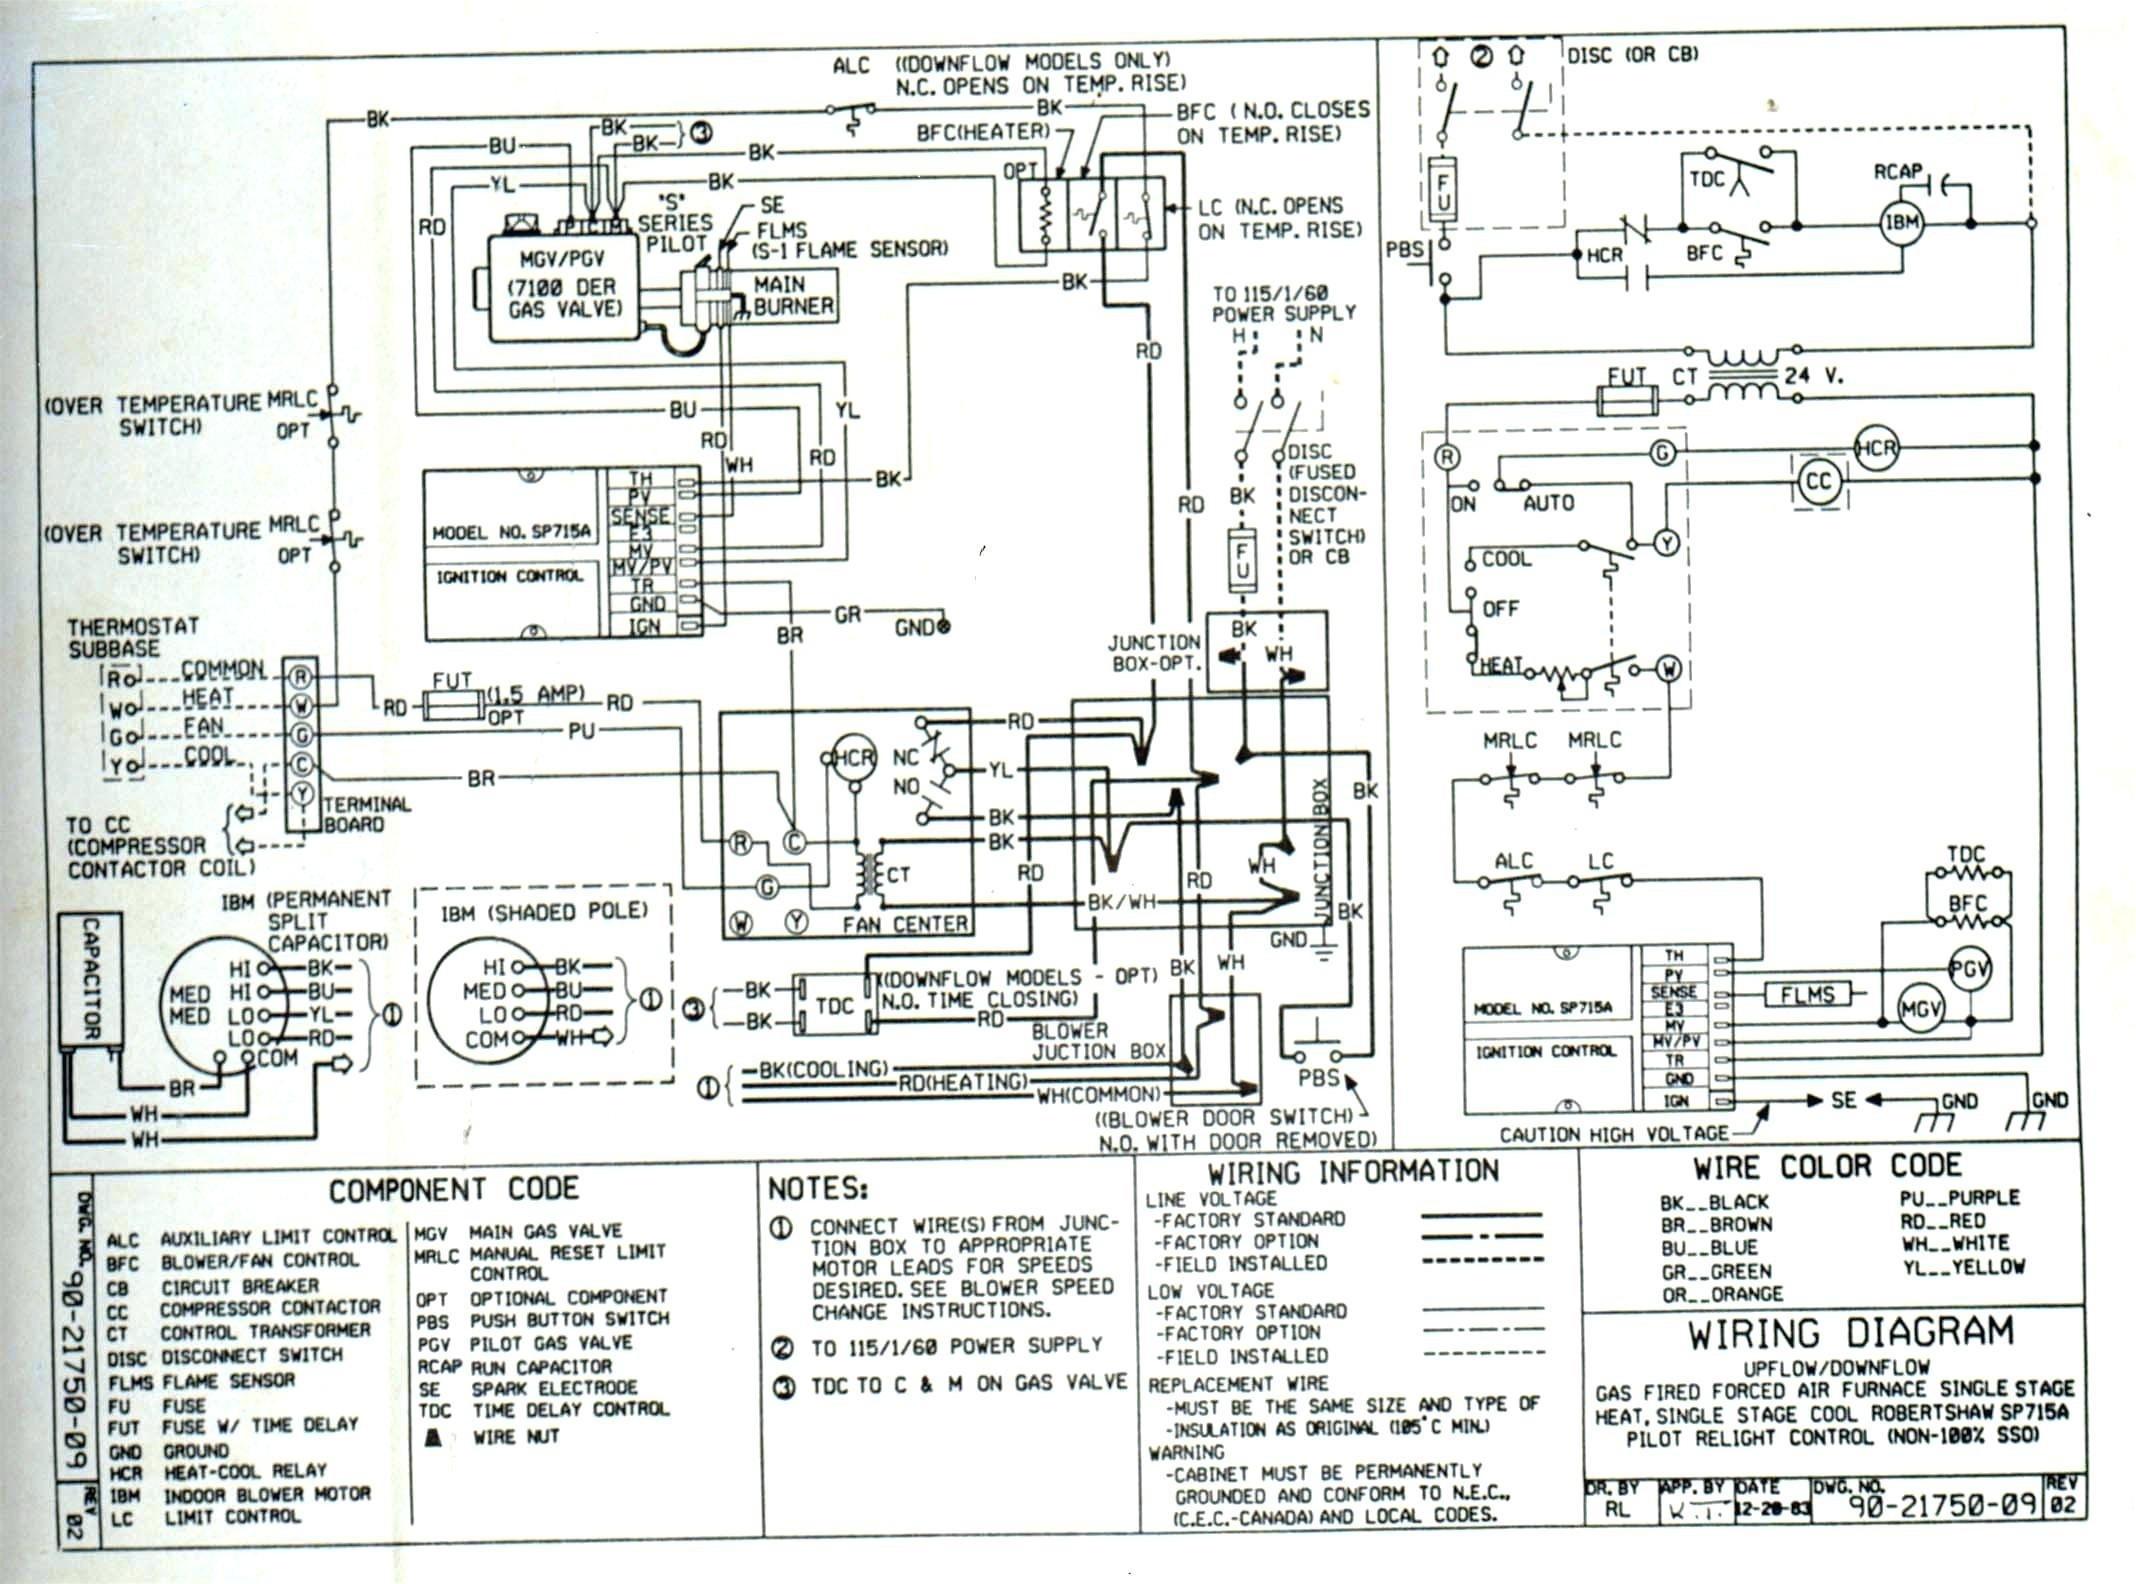 trane xt500c thermostat wiring diagram Collection-Wiring Diagram Detail Name trane xt500c thermostat 2-n